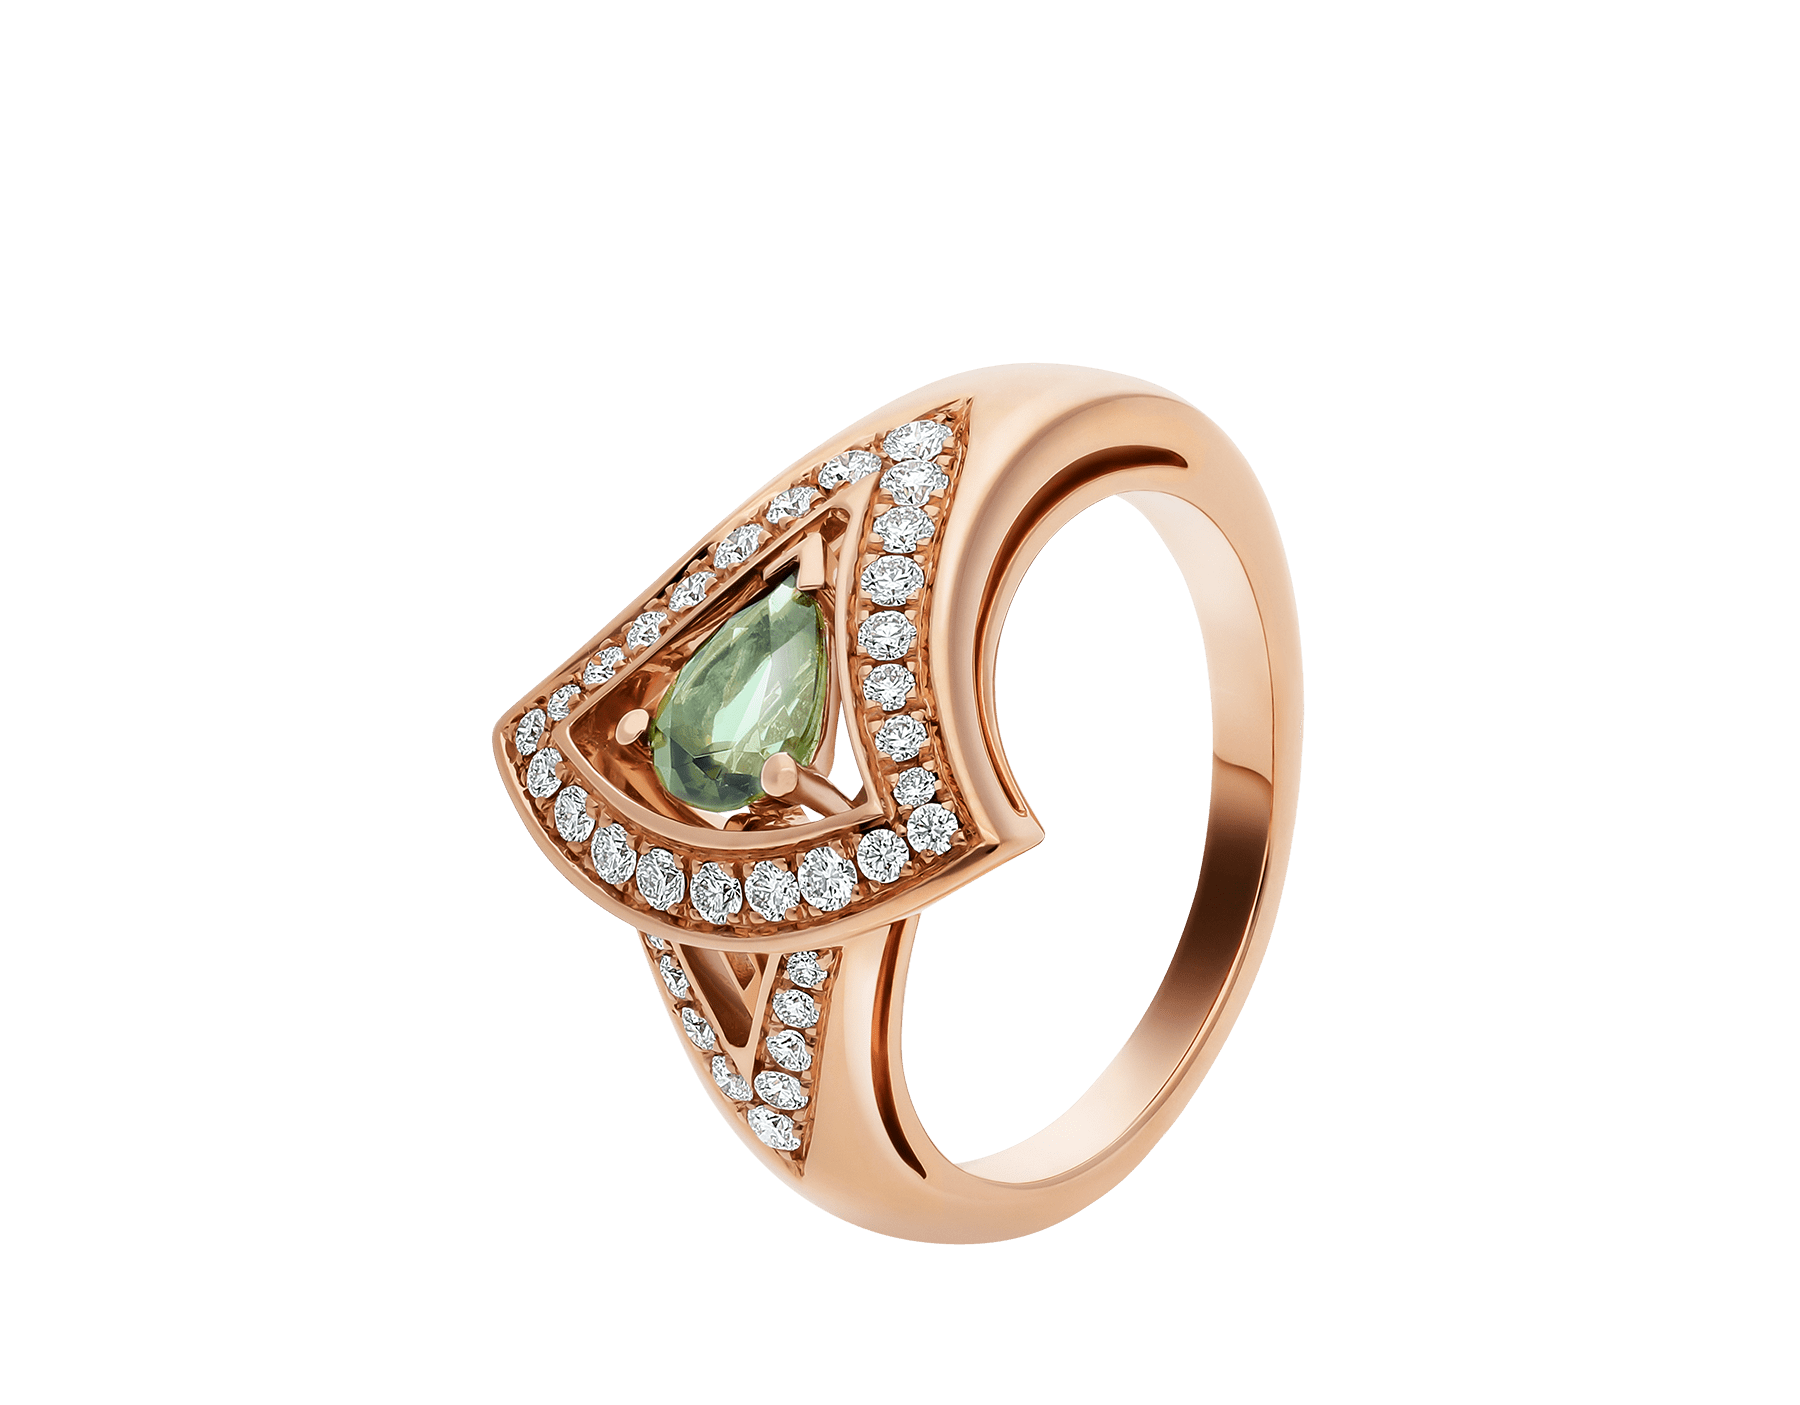 Bague DIVAS' DREAM en or rose 18 K sertie d'une tourmaline verte et pavé diamants AN858508 image 1